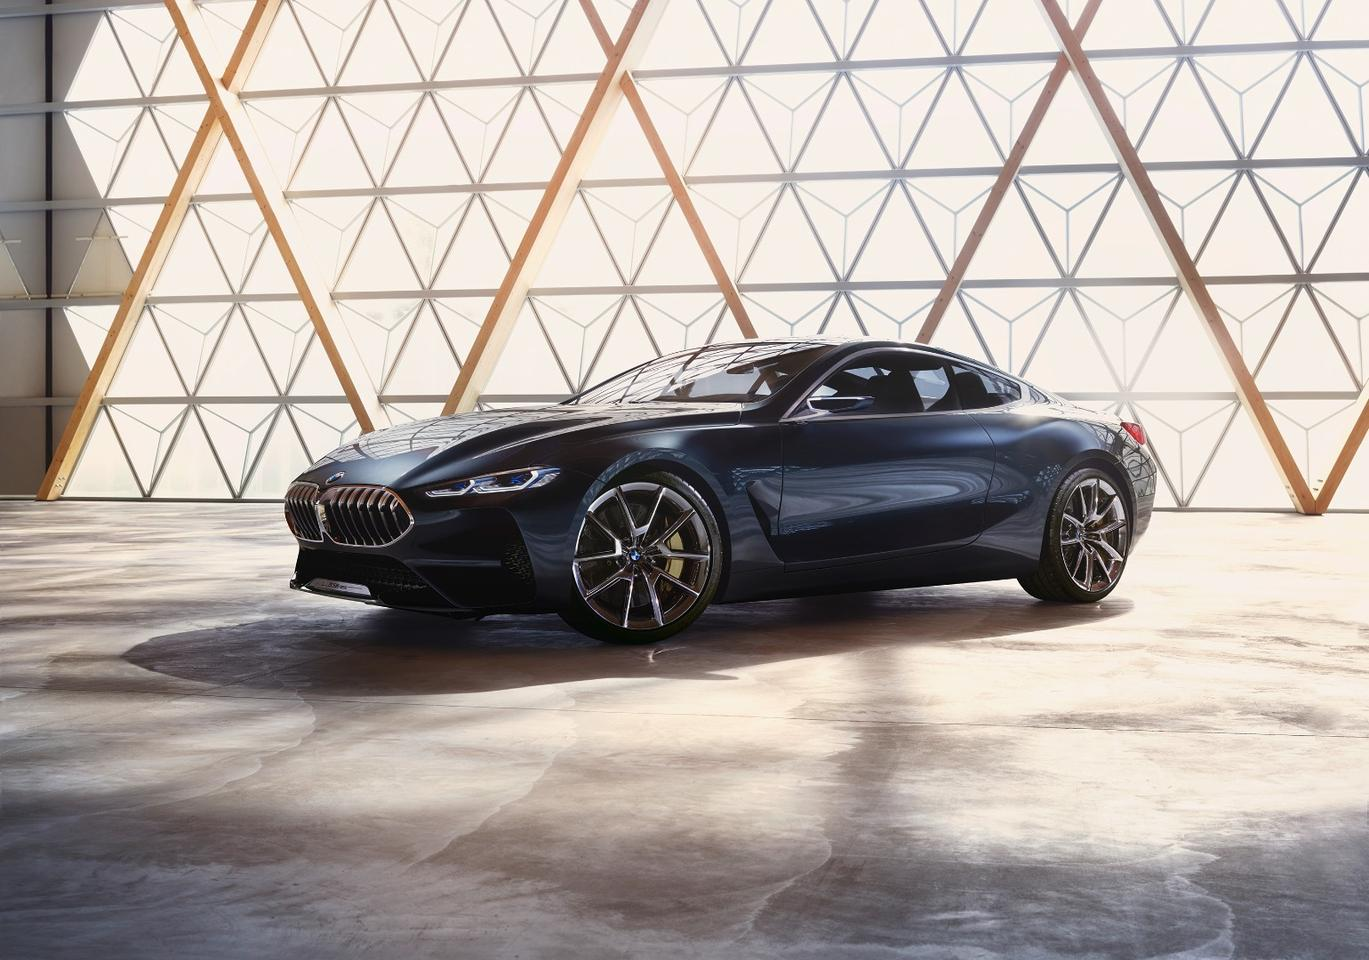 BMW's Concept 8Series is sharp, curvy and aggressive